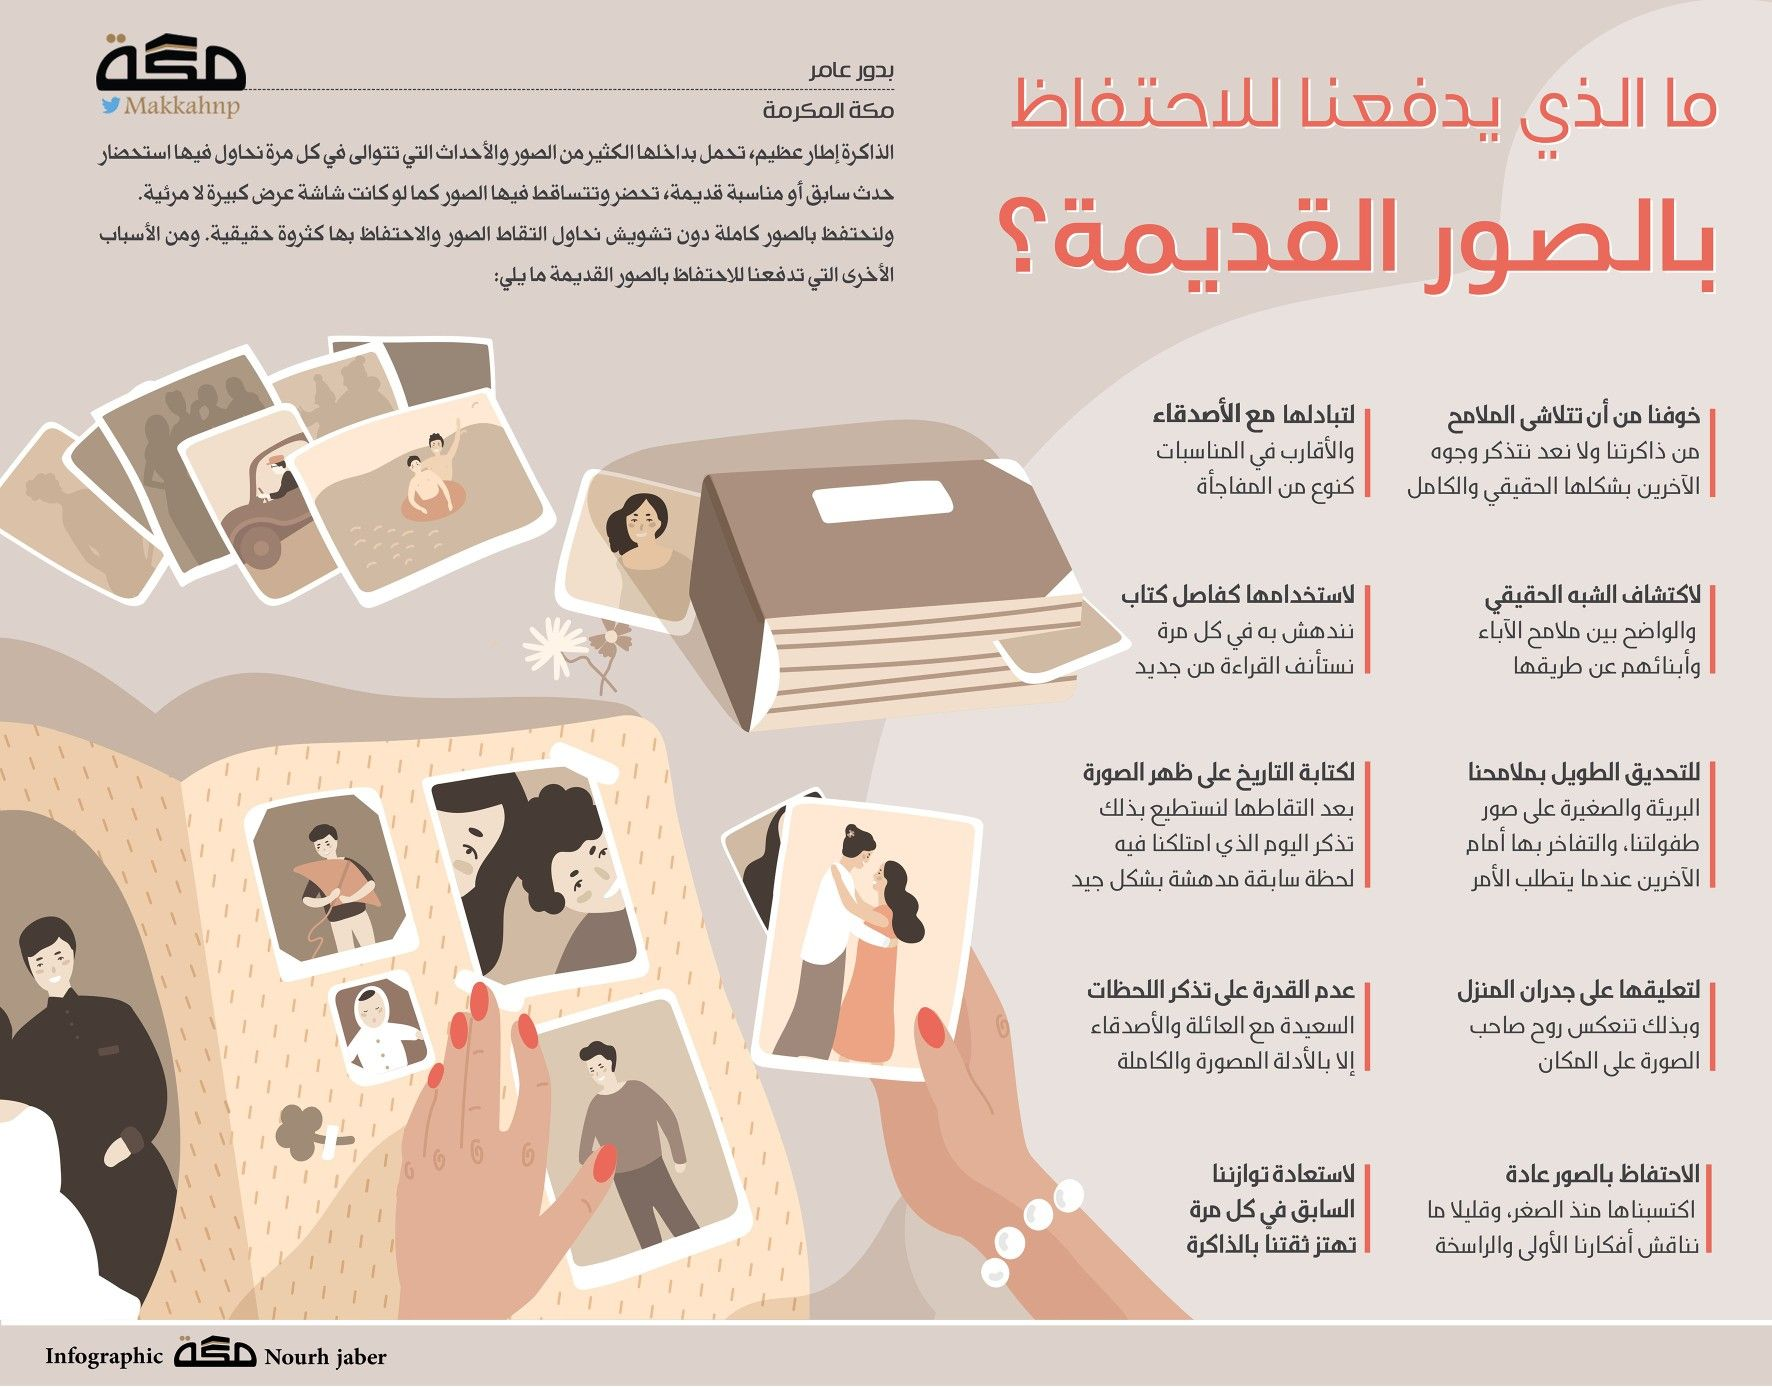 Pin By Bbmma On نصائح Infographic Graphic Design Knowledge